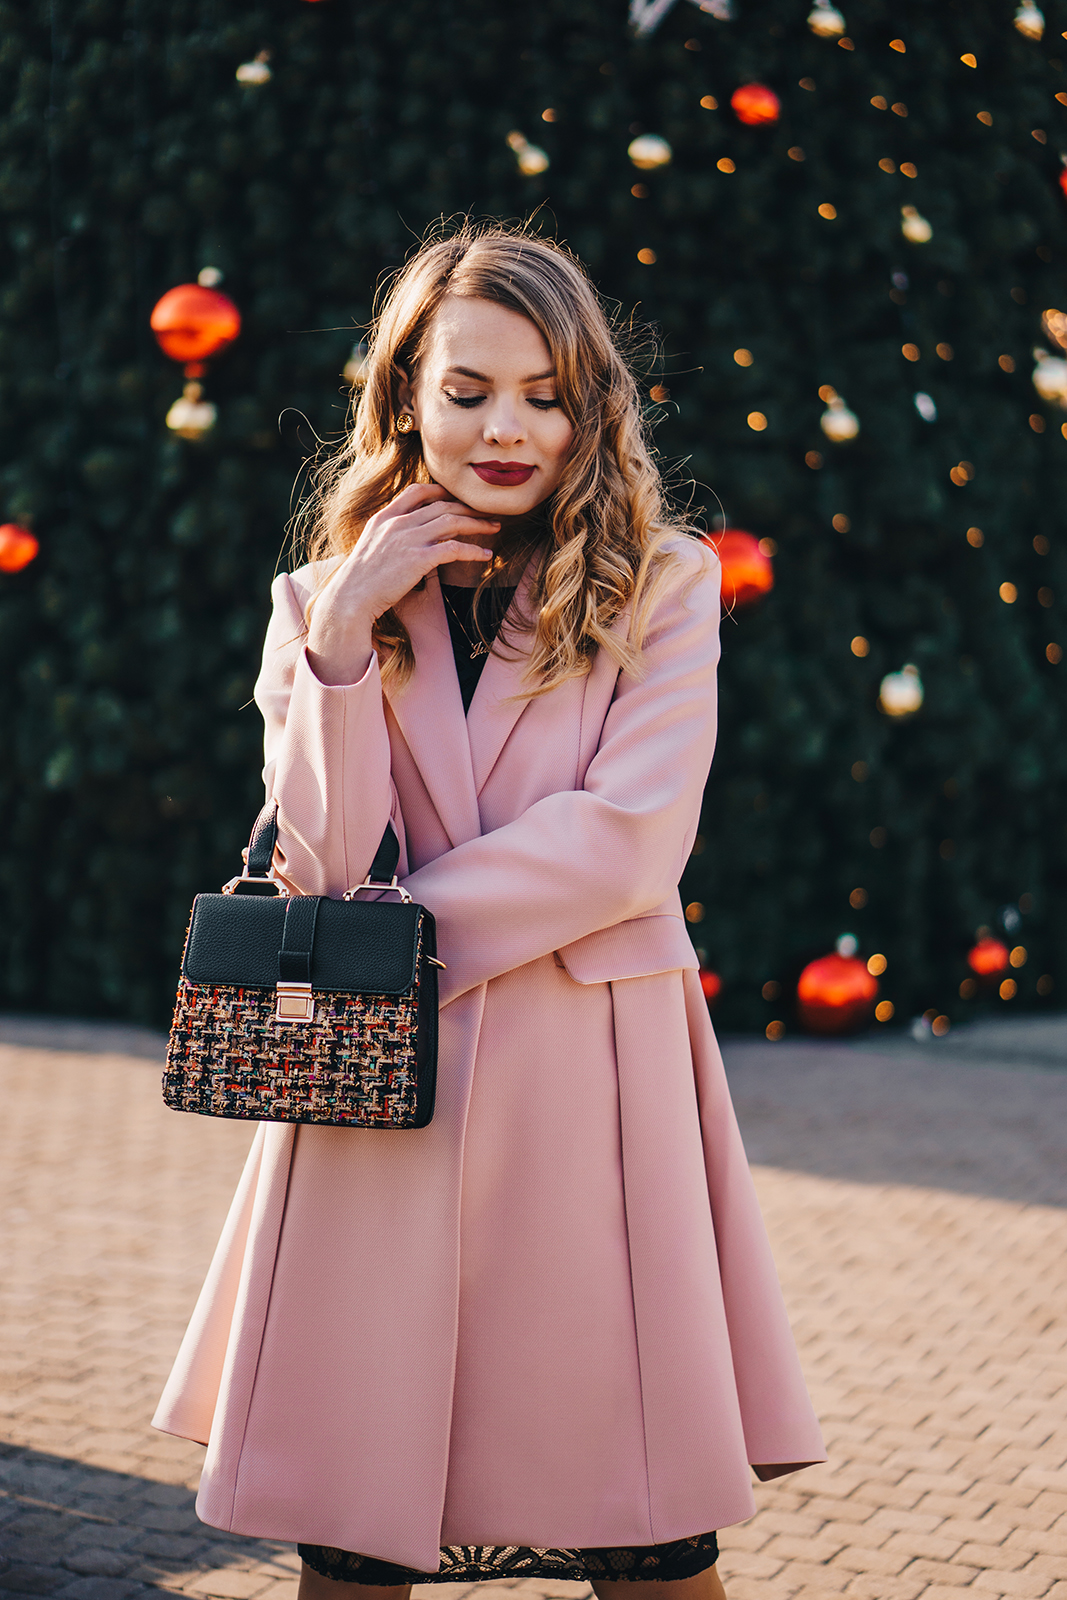 What to wear - The cutest outfits for Valentine's Day